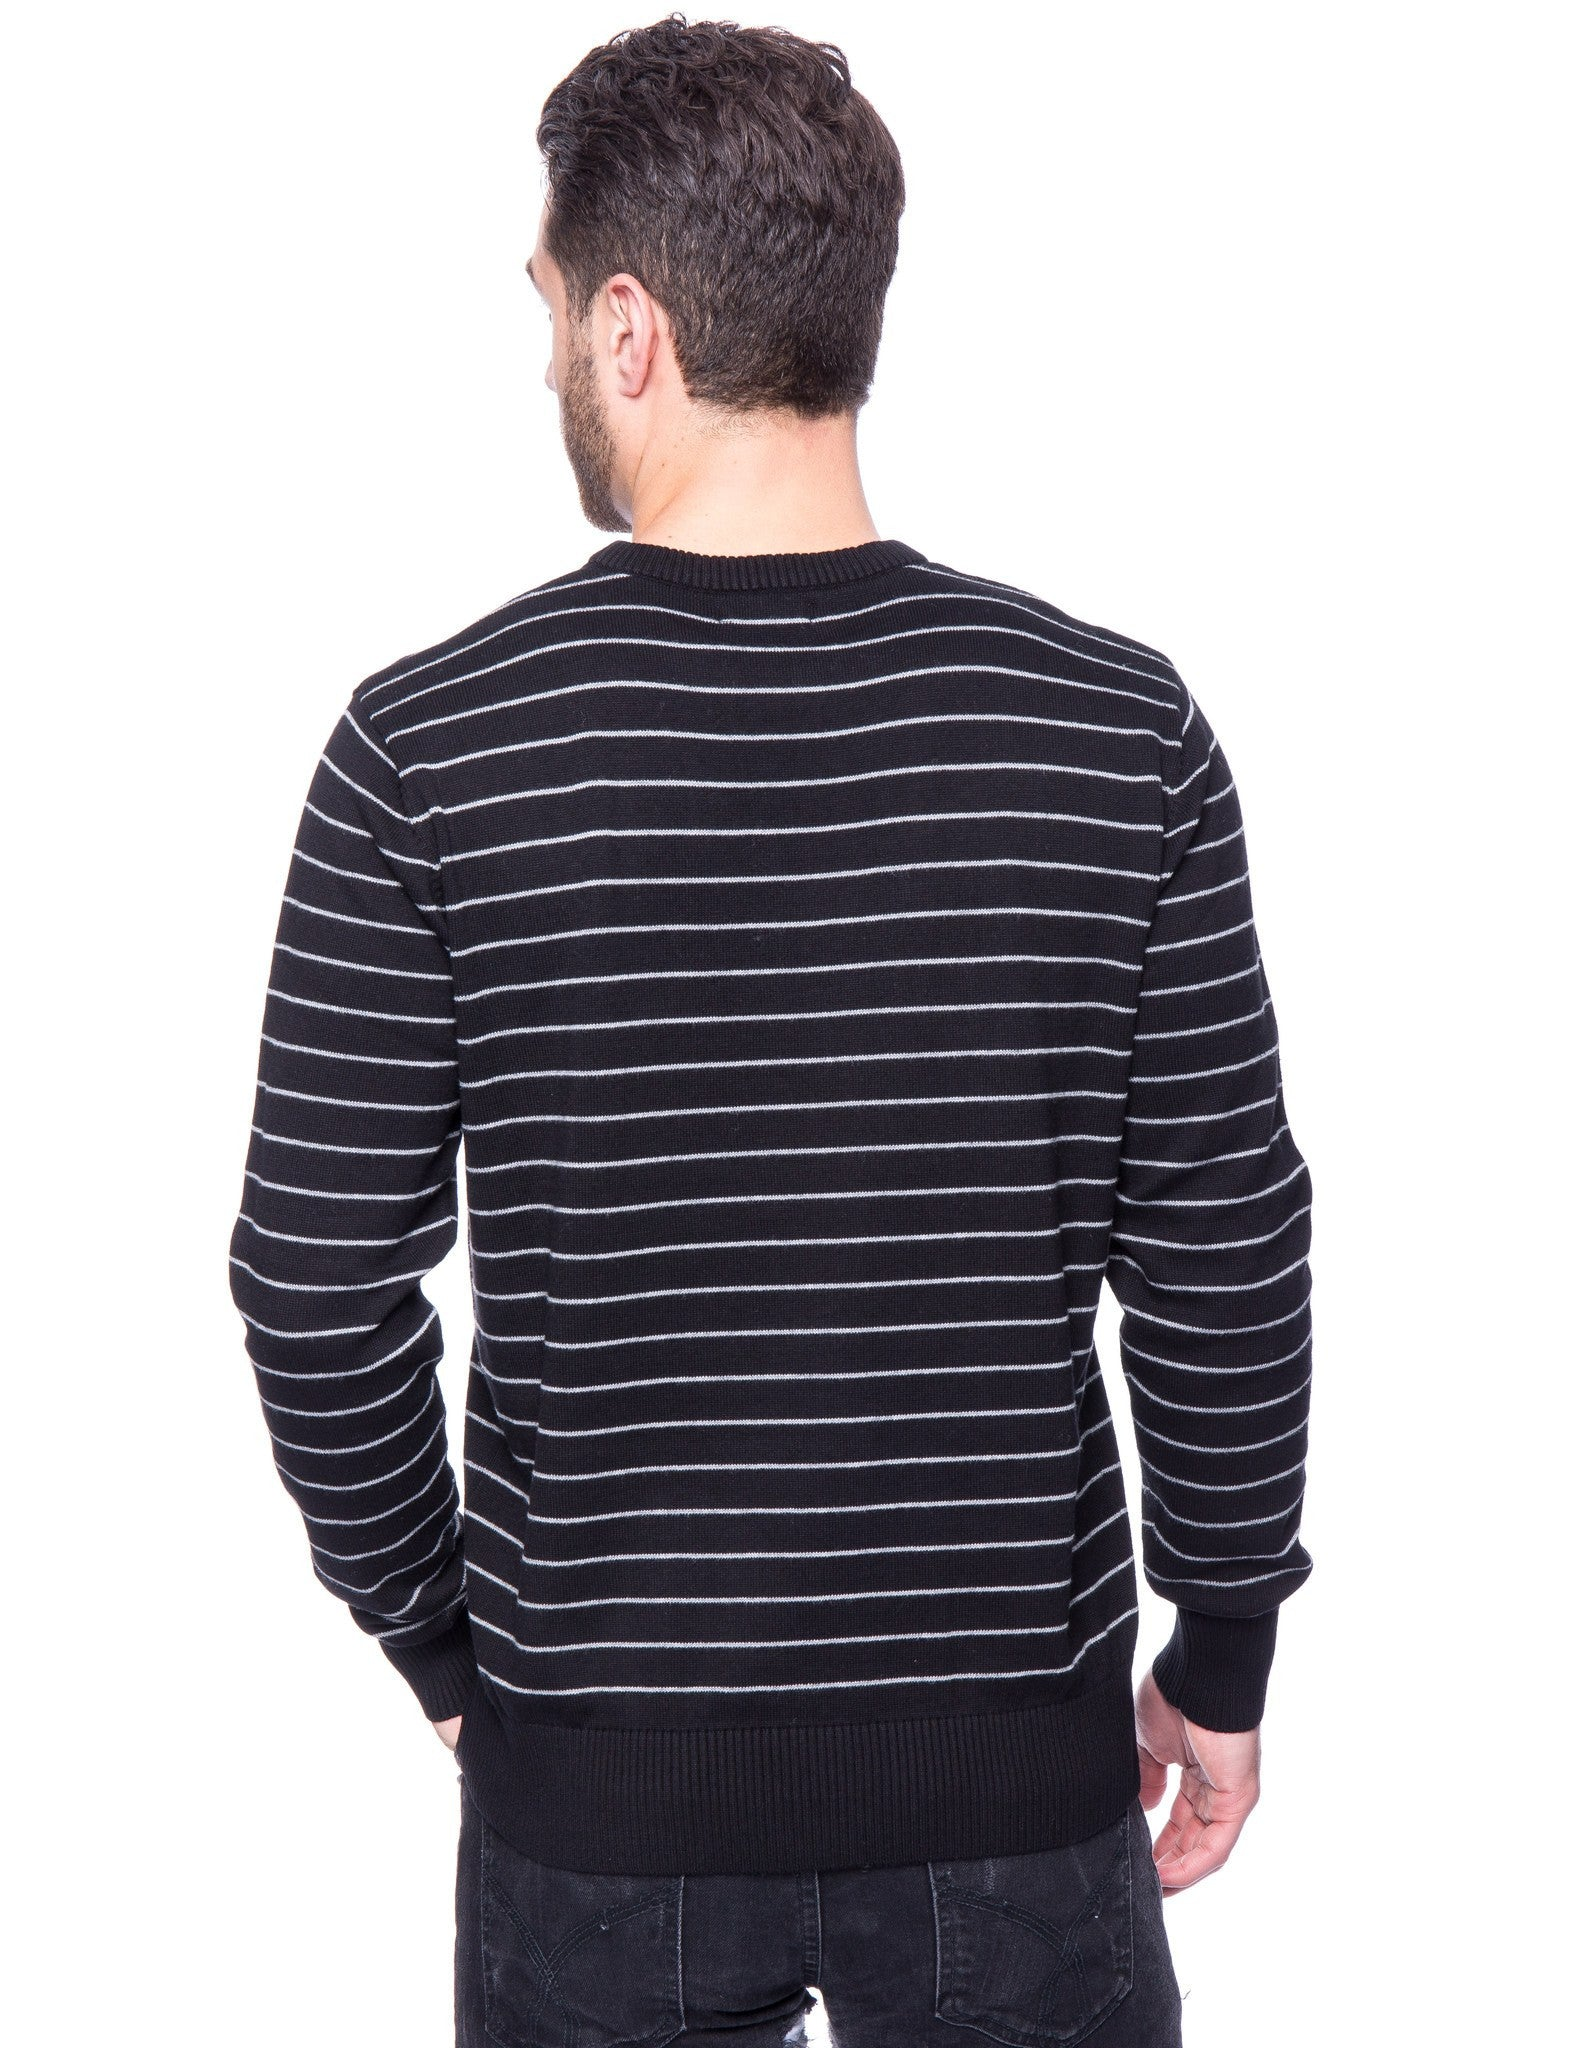 Stripes Black/Heather Grey